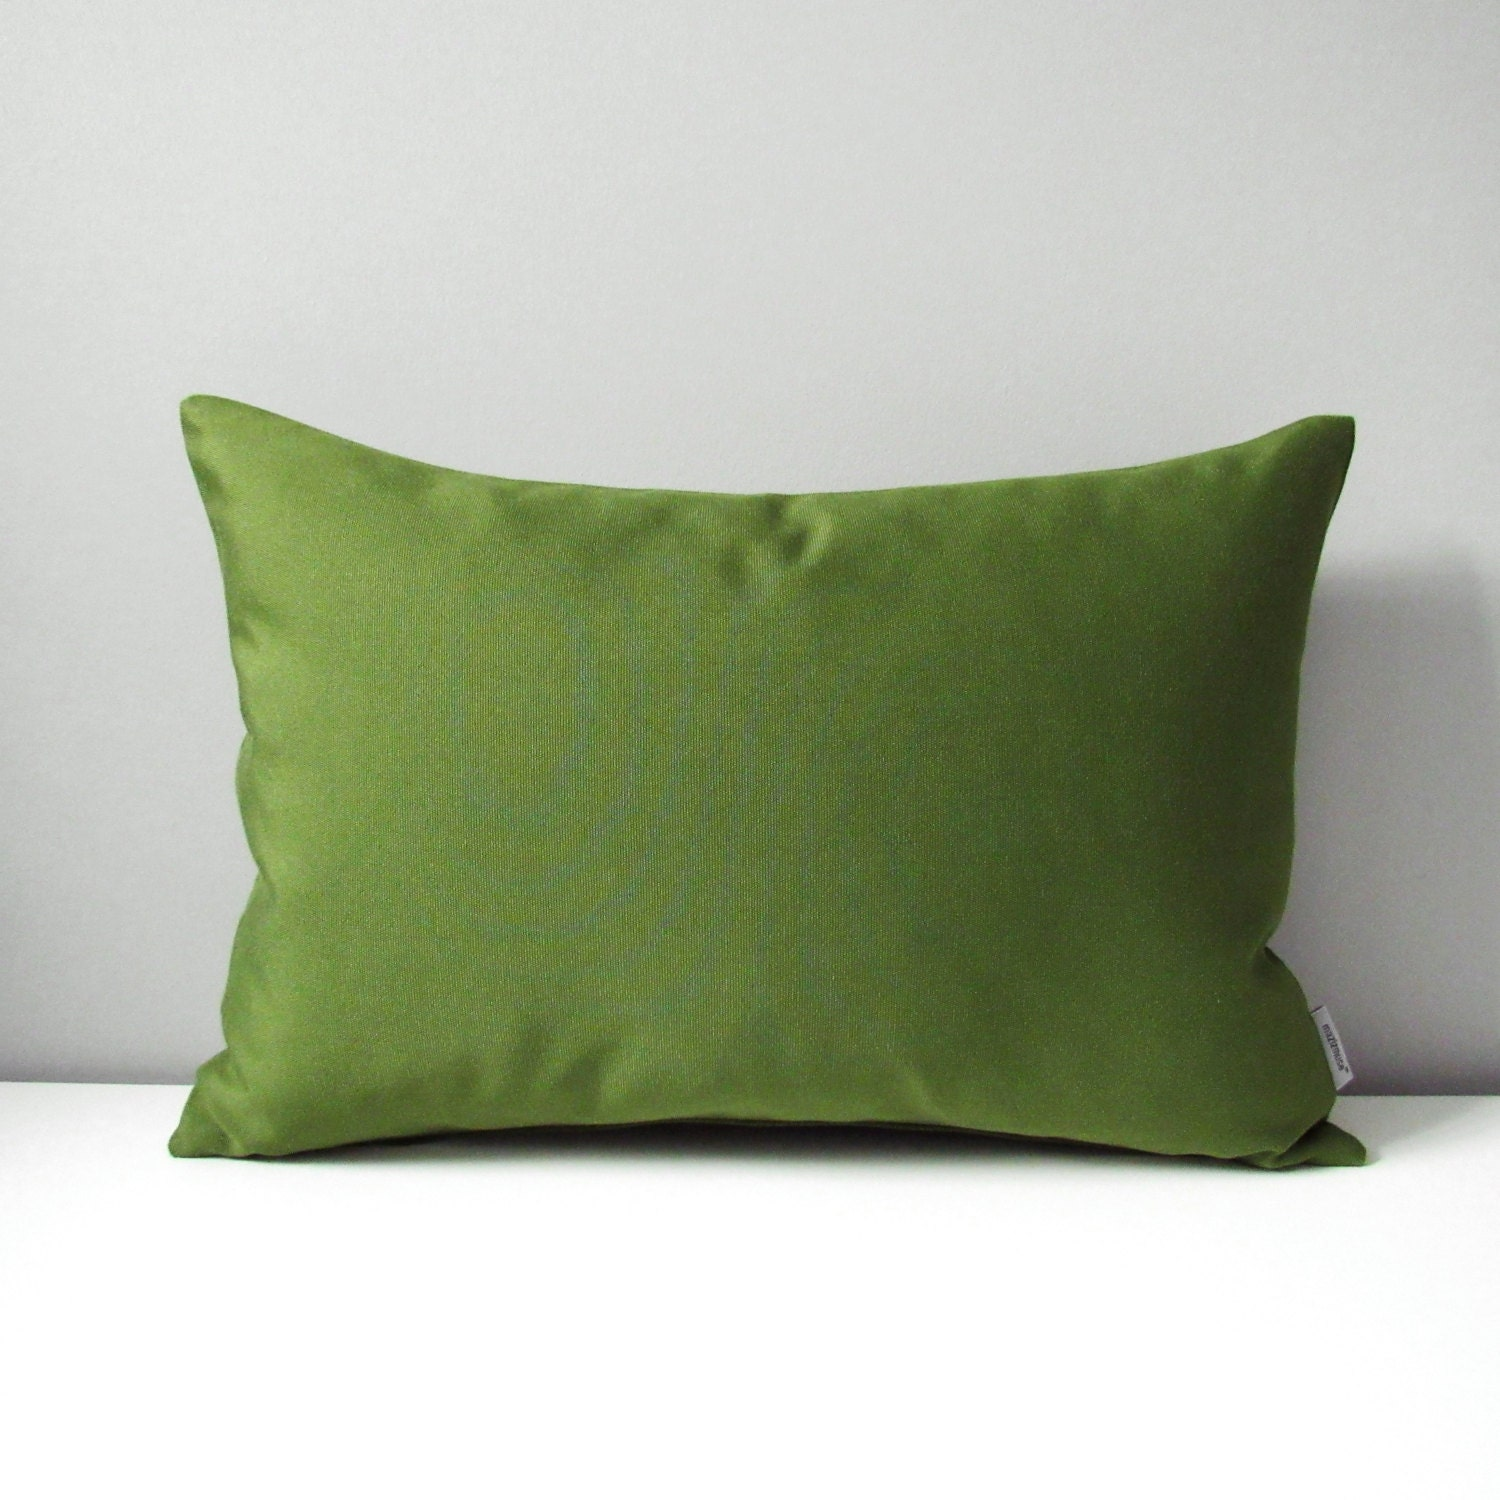 Olive Green Decorative Pillow : Olive Green Sunbrella Pillow Cover Decorative Outdoor Pillow